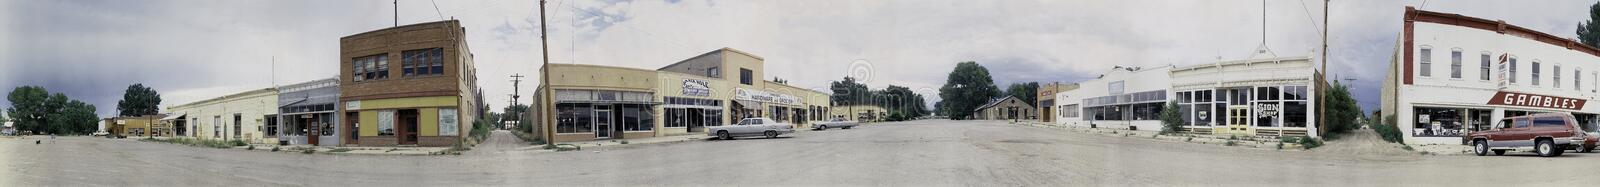 Group of storefronts in New Mexico stock photo